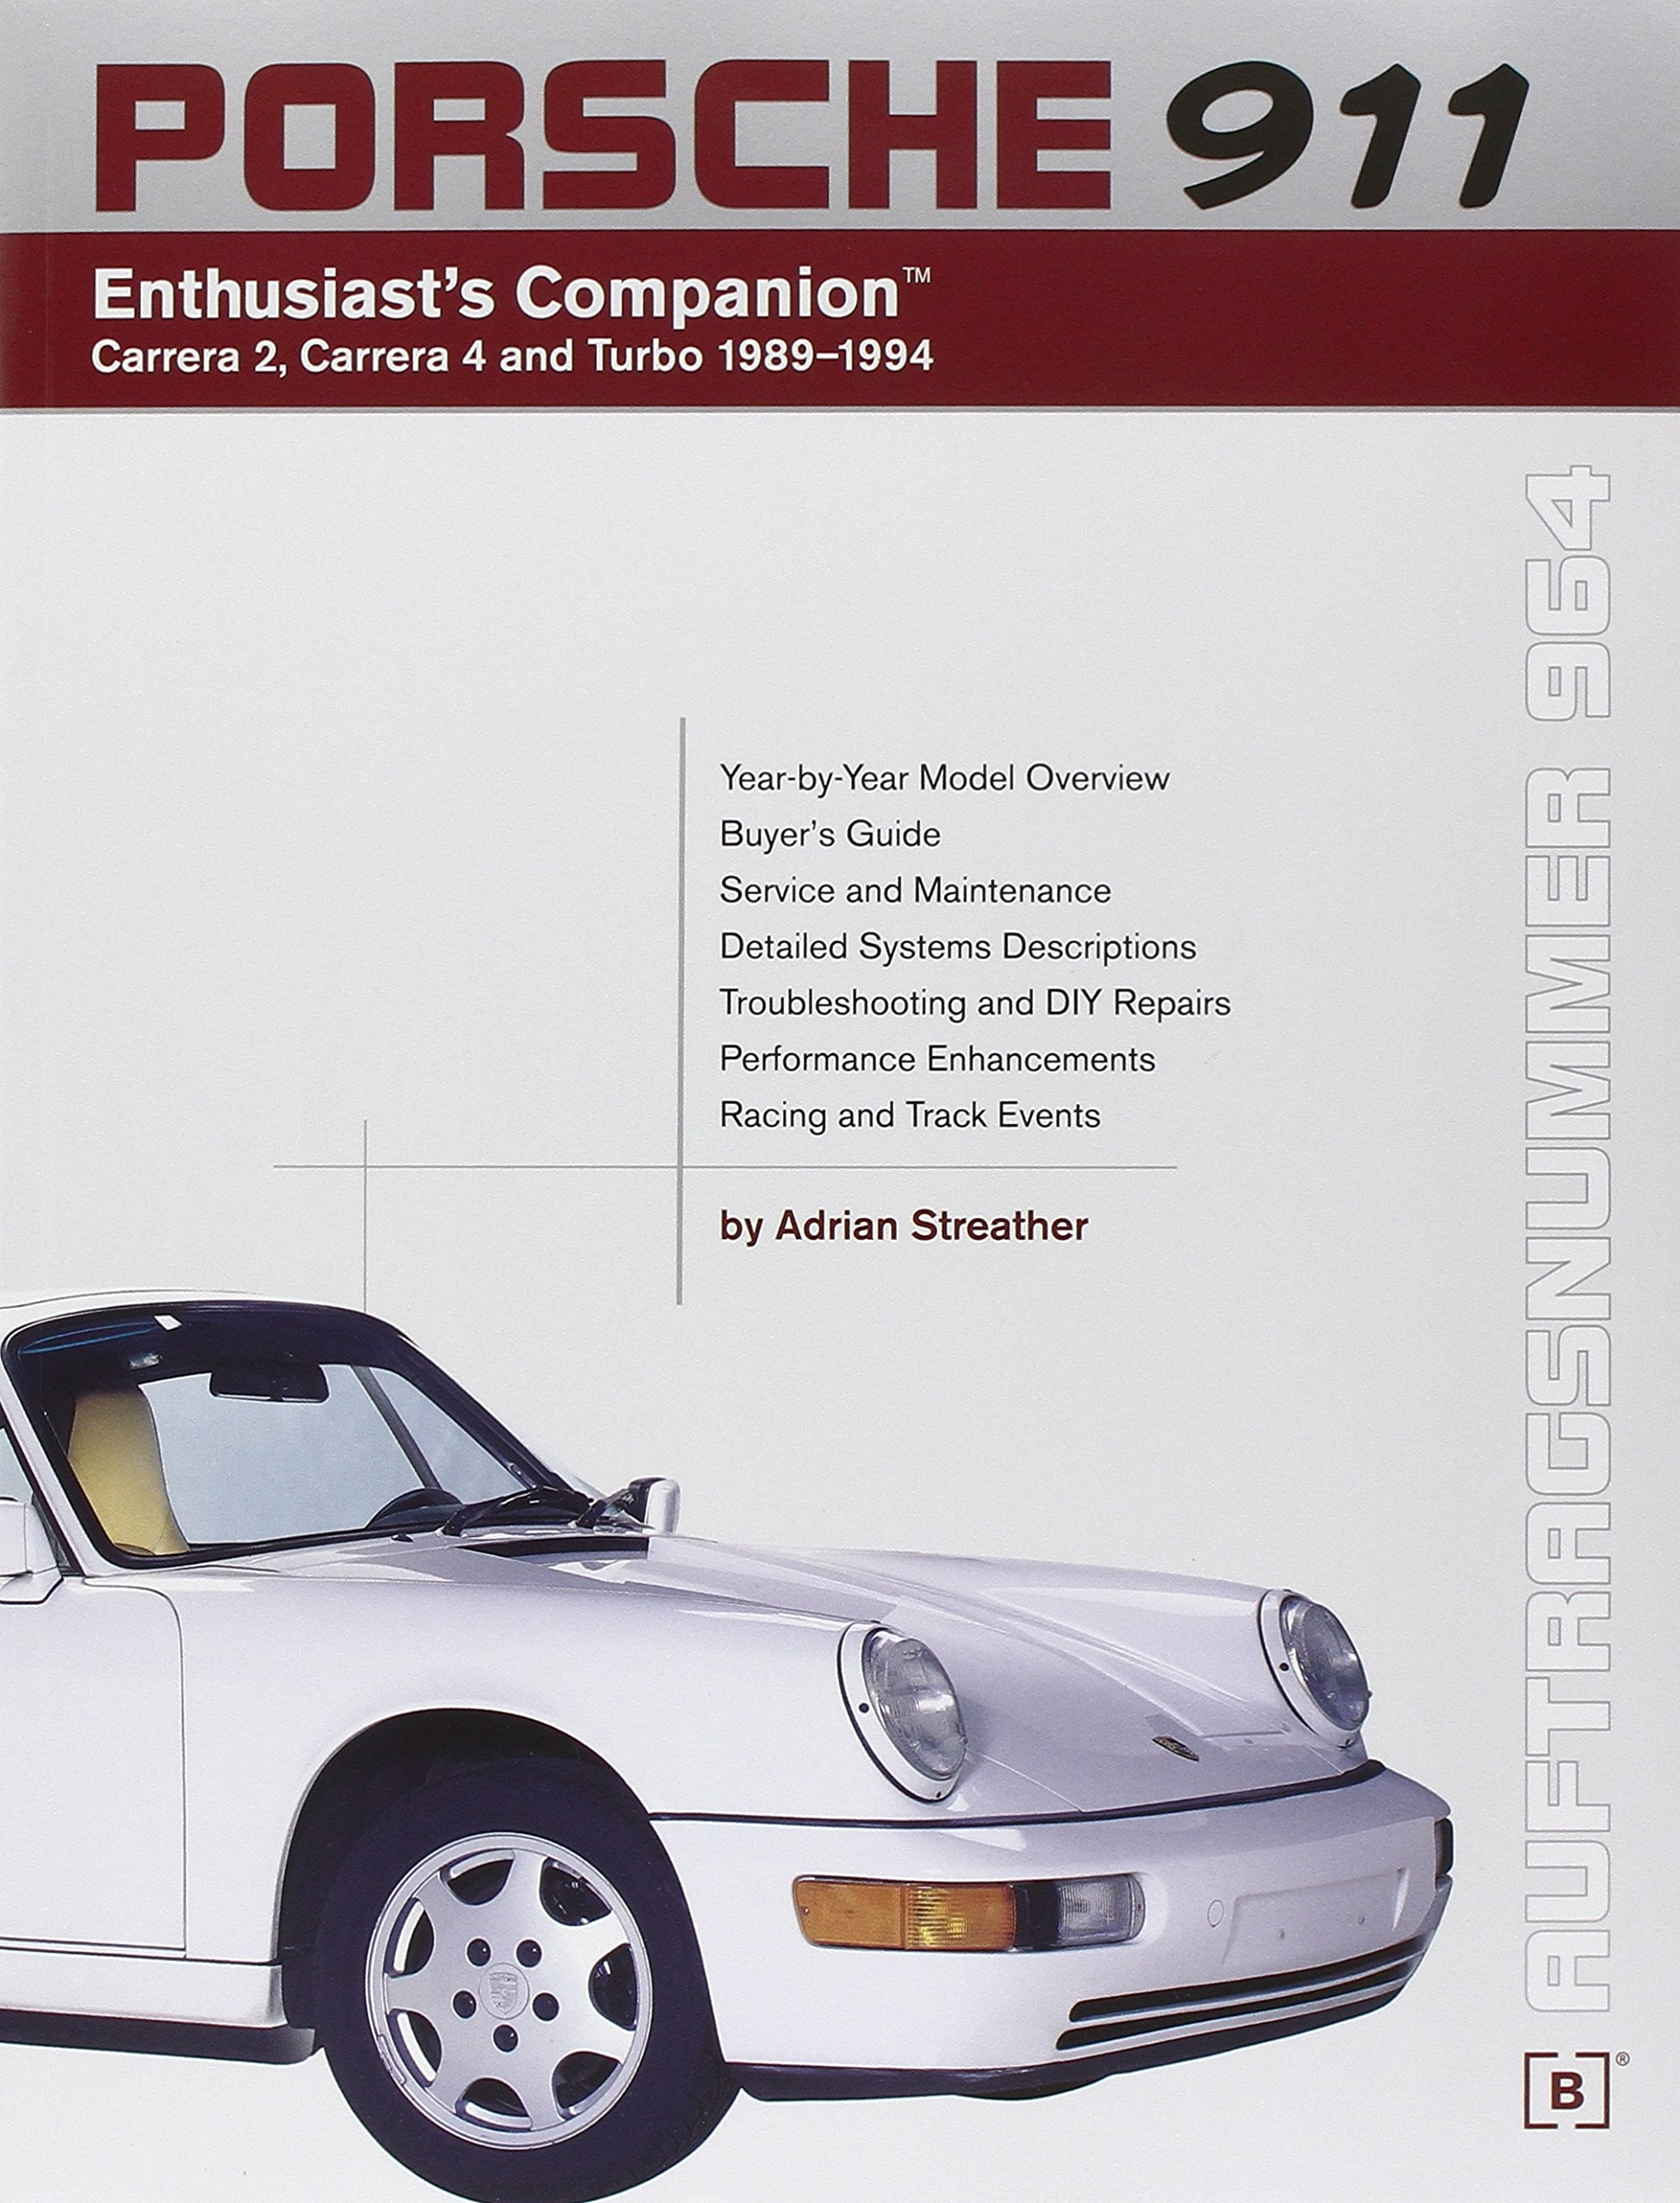 Porsche 911 enthusiasts companion carrera 2 carrera 4 and turbo porsche 911 enthusiasts companion carrera 2 carrera 4 and turbo 1989 1994 amazon adrian streather 9780837602936 books publicscrutiny Choice Image